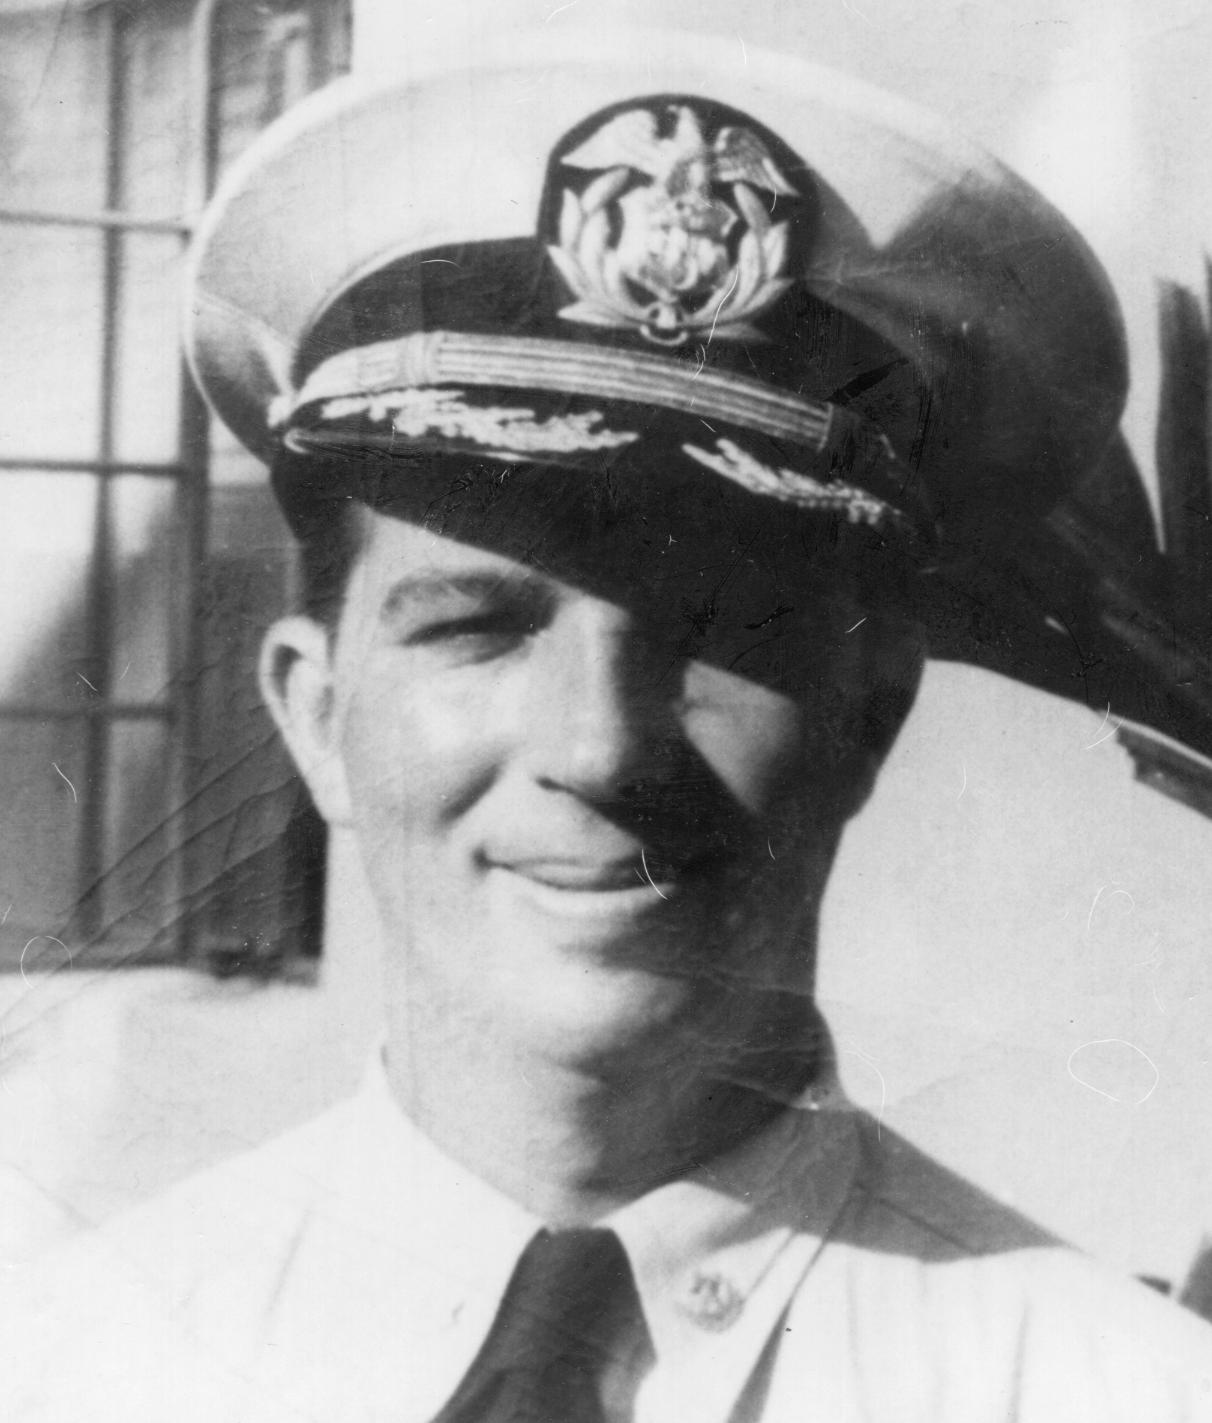 Bill's father, deep-sea ship captain Rudy Patzert